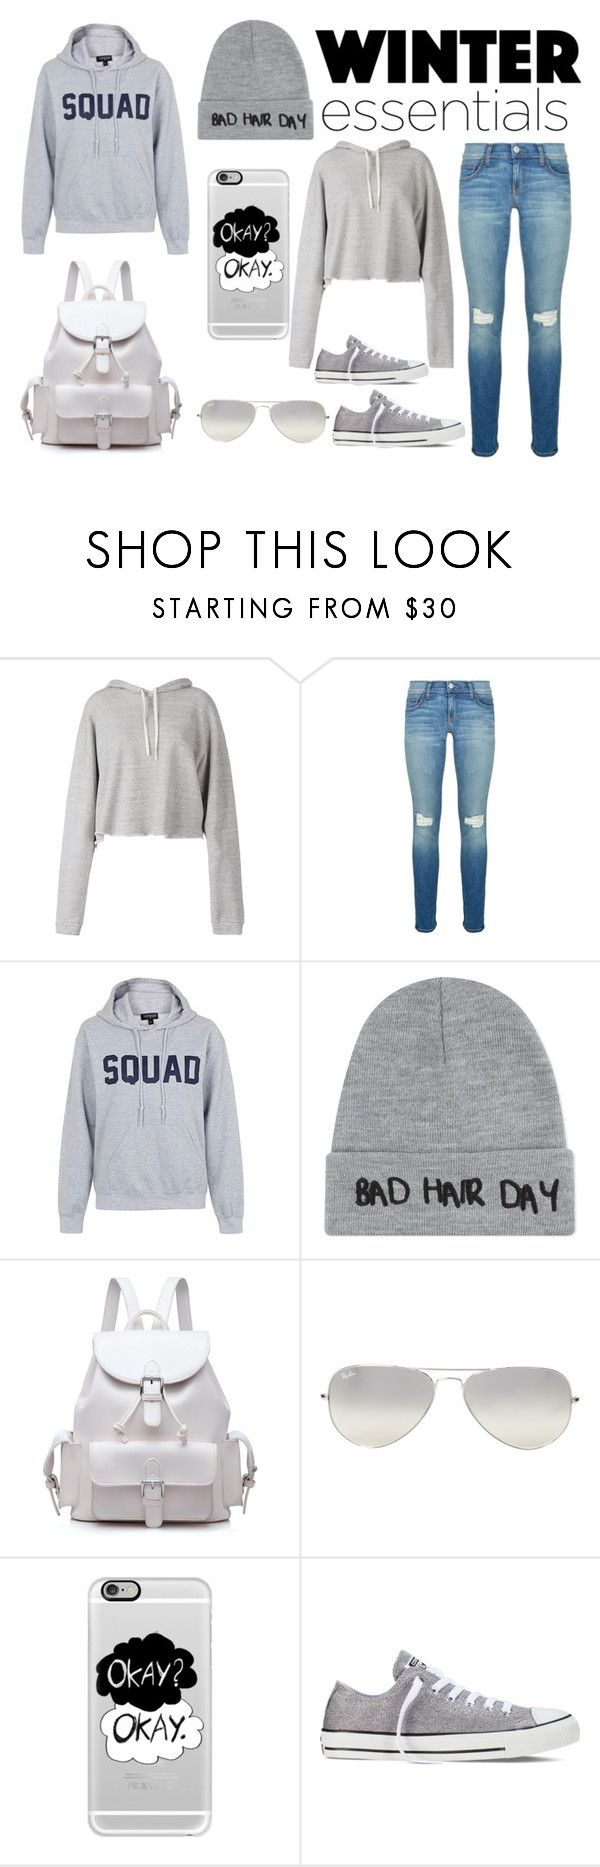 """""""Winter Essentials"""" by rxvxkx ❤ liked on Polyvore featuring Faith Connexion, Rebecca Minkoff, Topshop, Local Heroes, Ray-Ban, Casetify, Converse, Winter, winterstyle and wintertrend"""